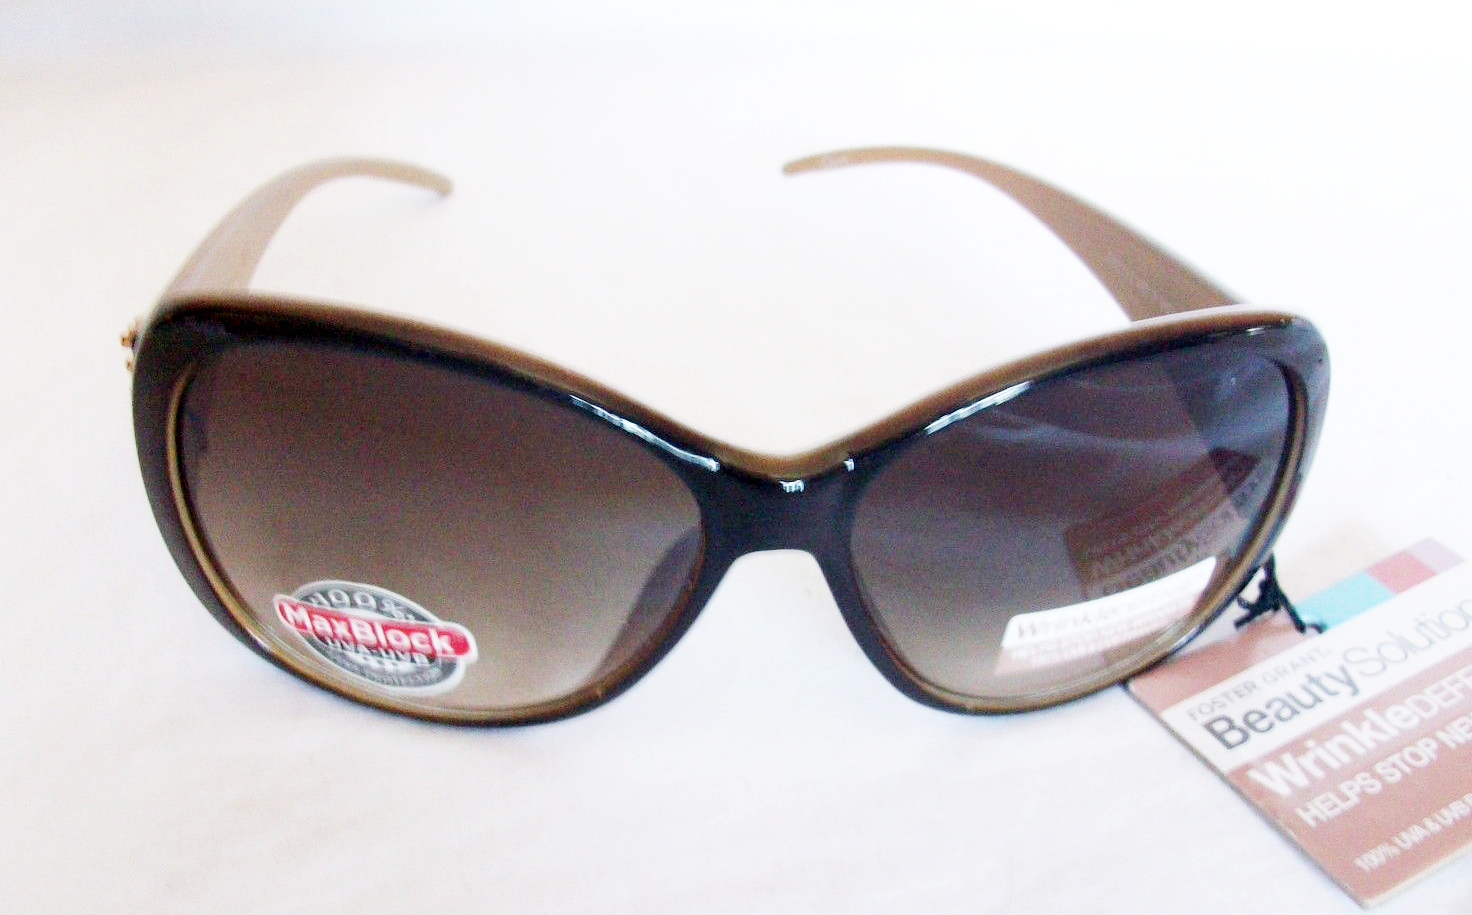 Primary image for FOSTER GRANT WRINKLE DEFENSE SUNGLASSES BROWN WITH BRONZE STUDS